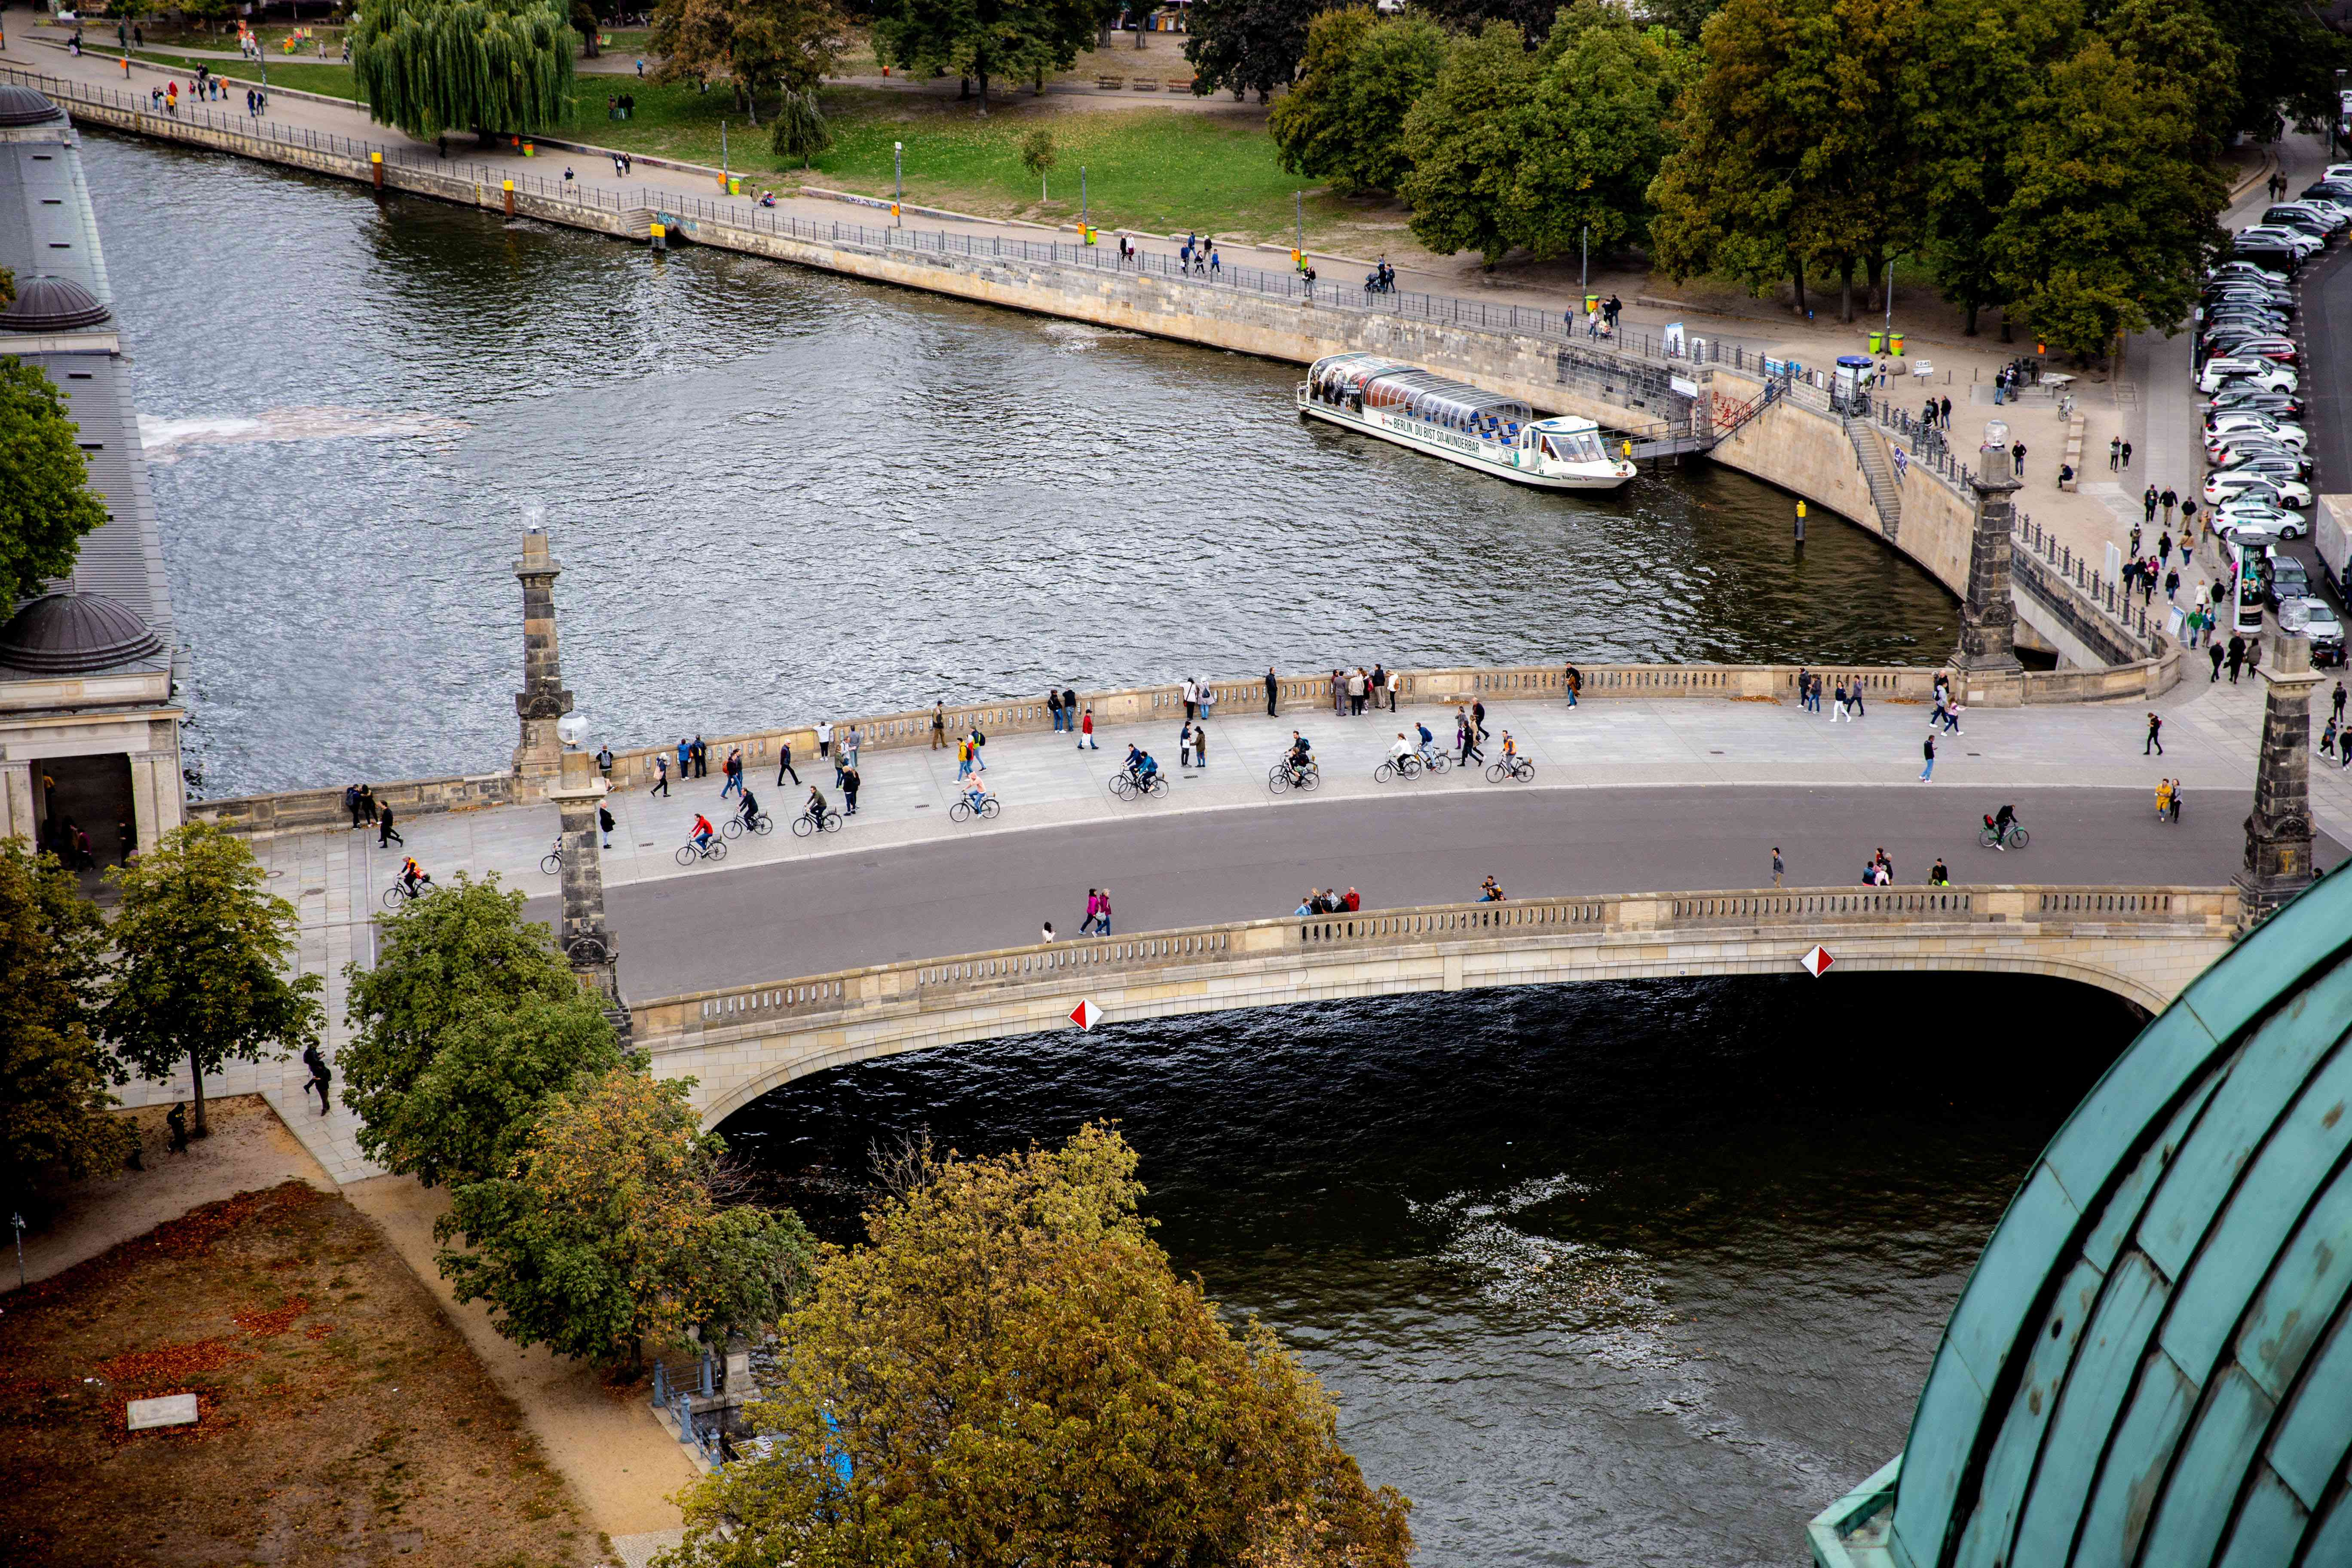 a tourist boat docked by a pedestrian bridge on the river spree